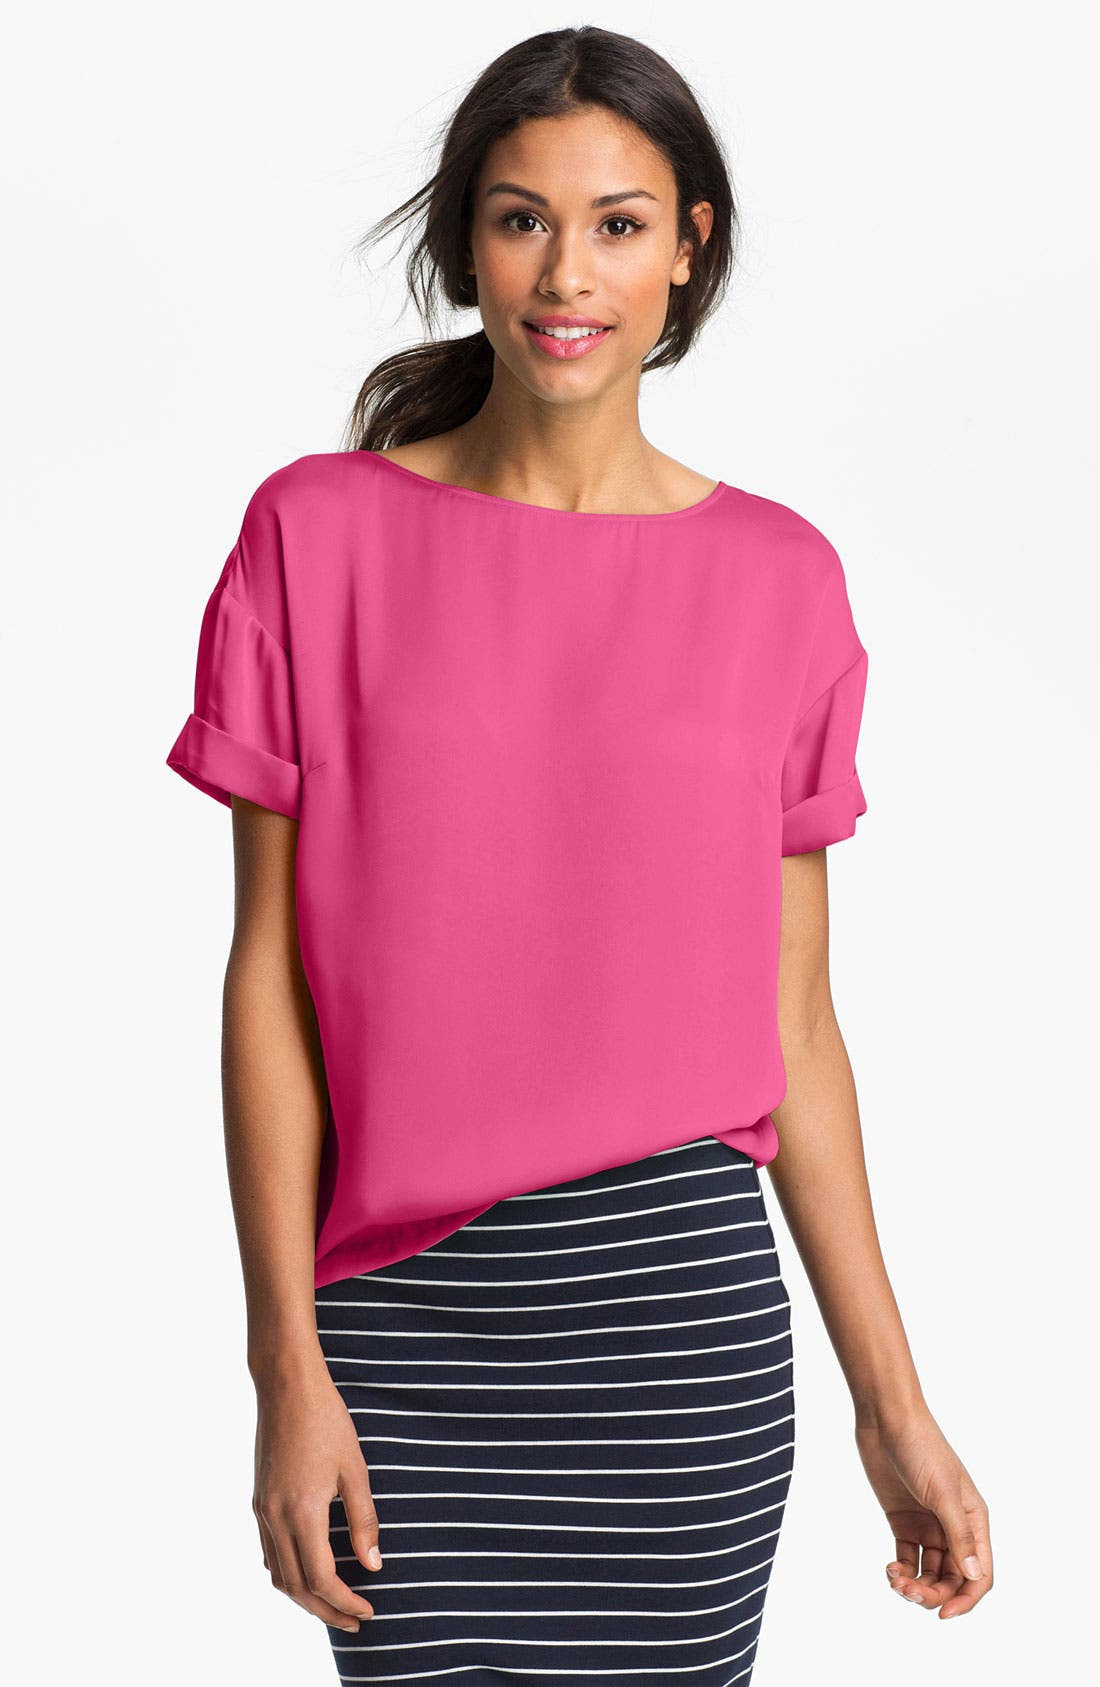 Alternate Image 1 Selected - Vince Camuto Short Sleeve Blouse